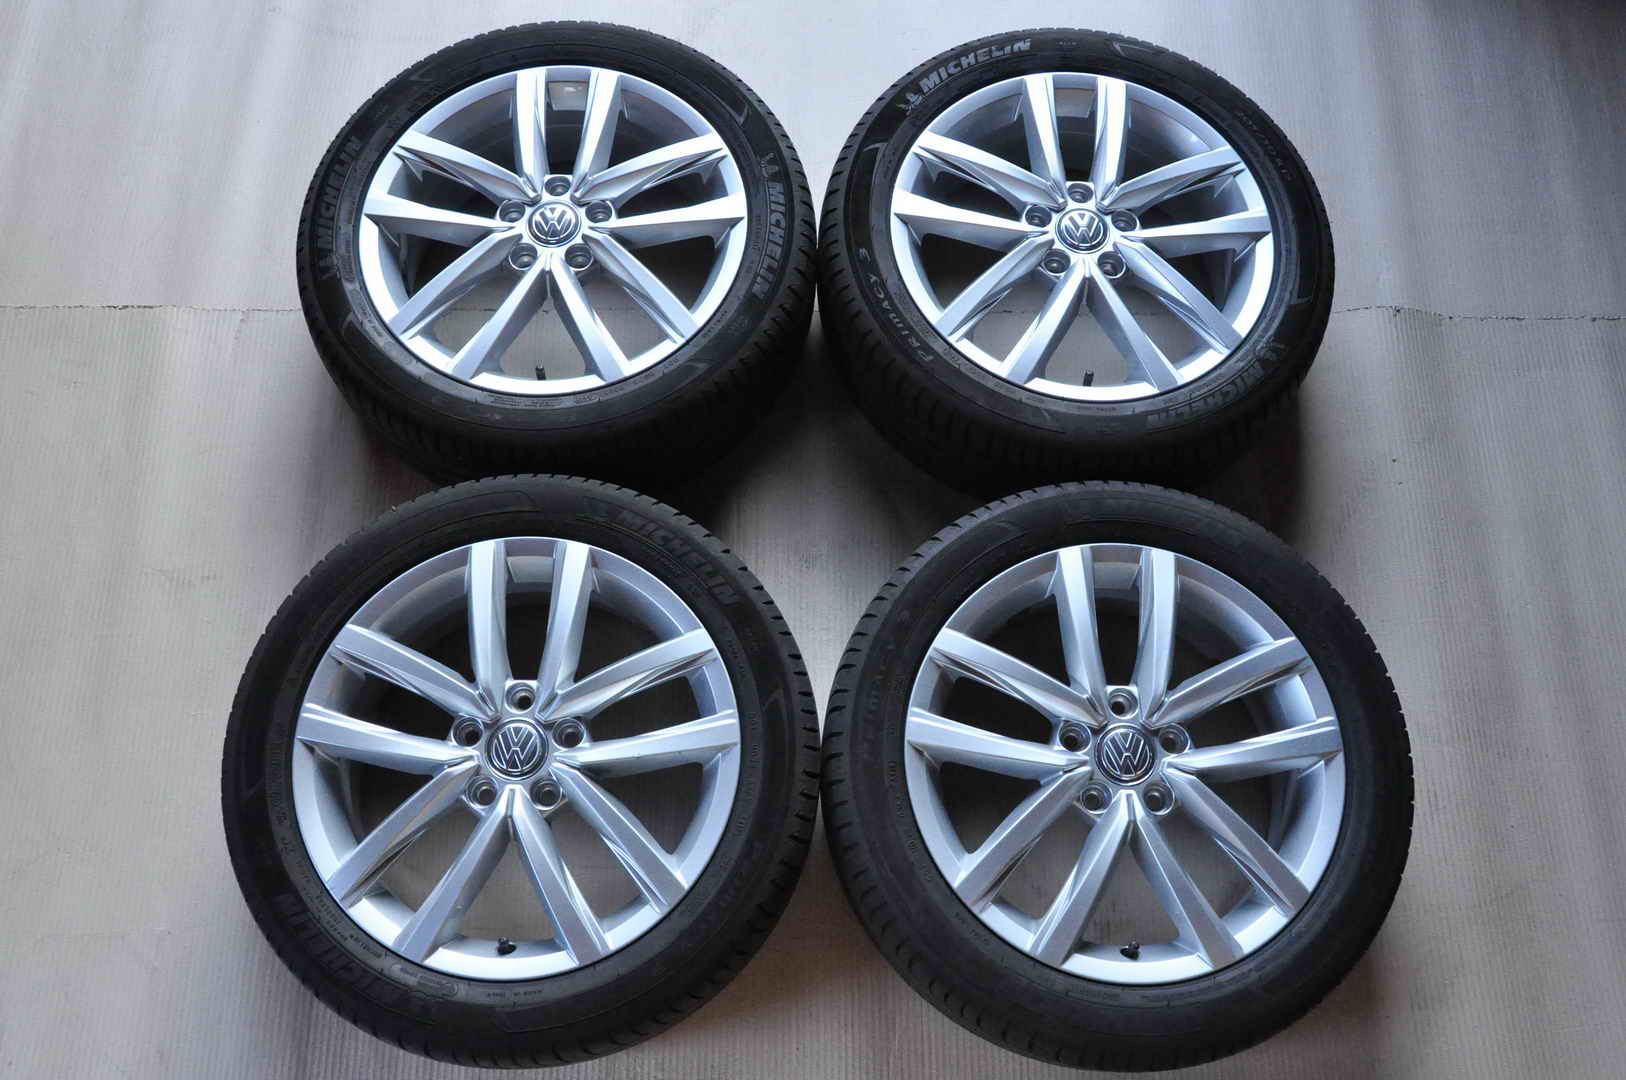 Roti Vara Vw Golf Jetta Caddy 6J 17 inch ET50 2K5601025N Michelin 205.50.R17 01